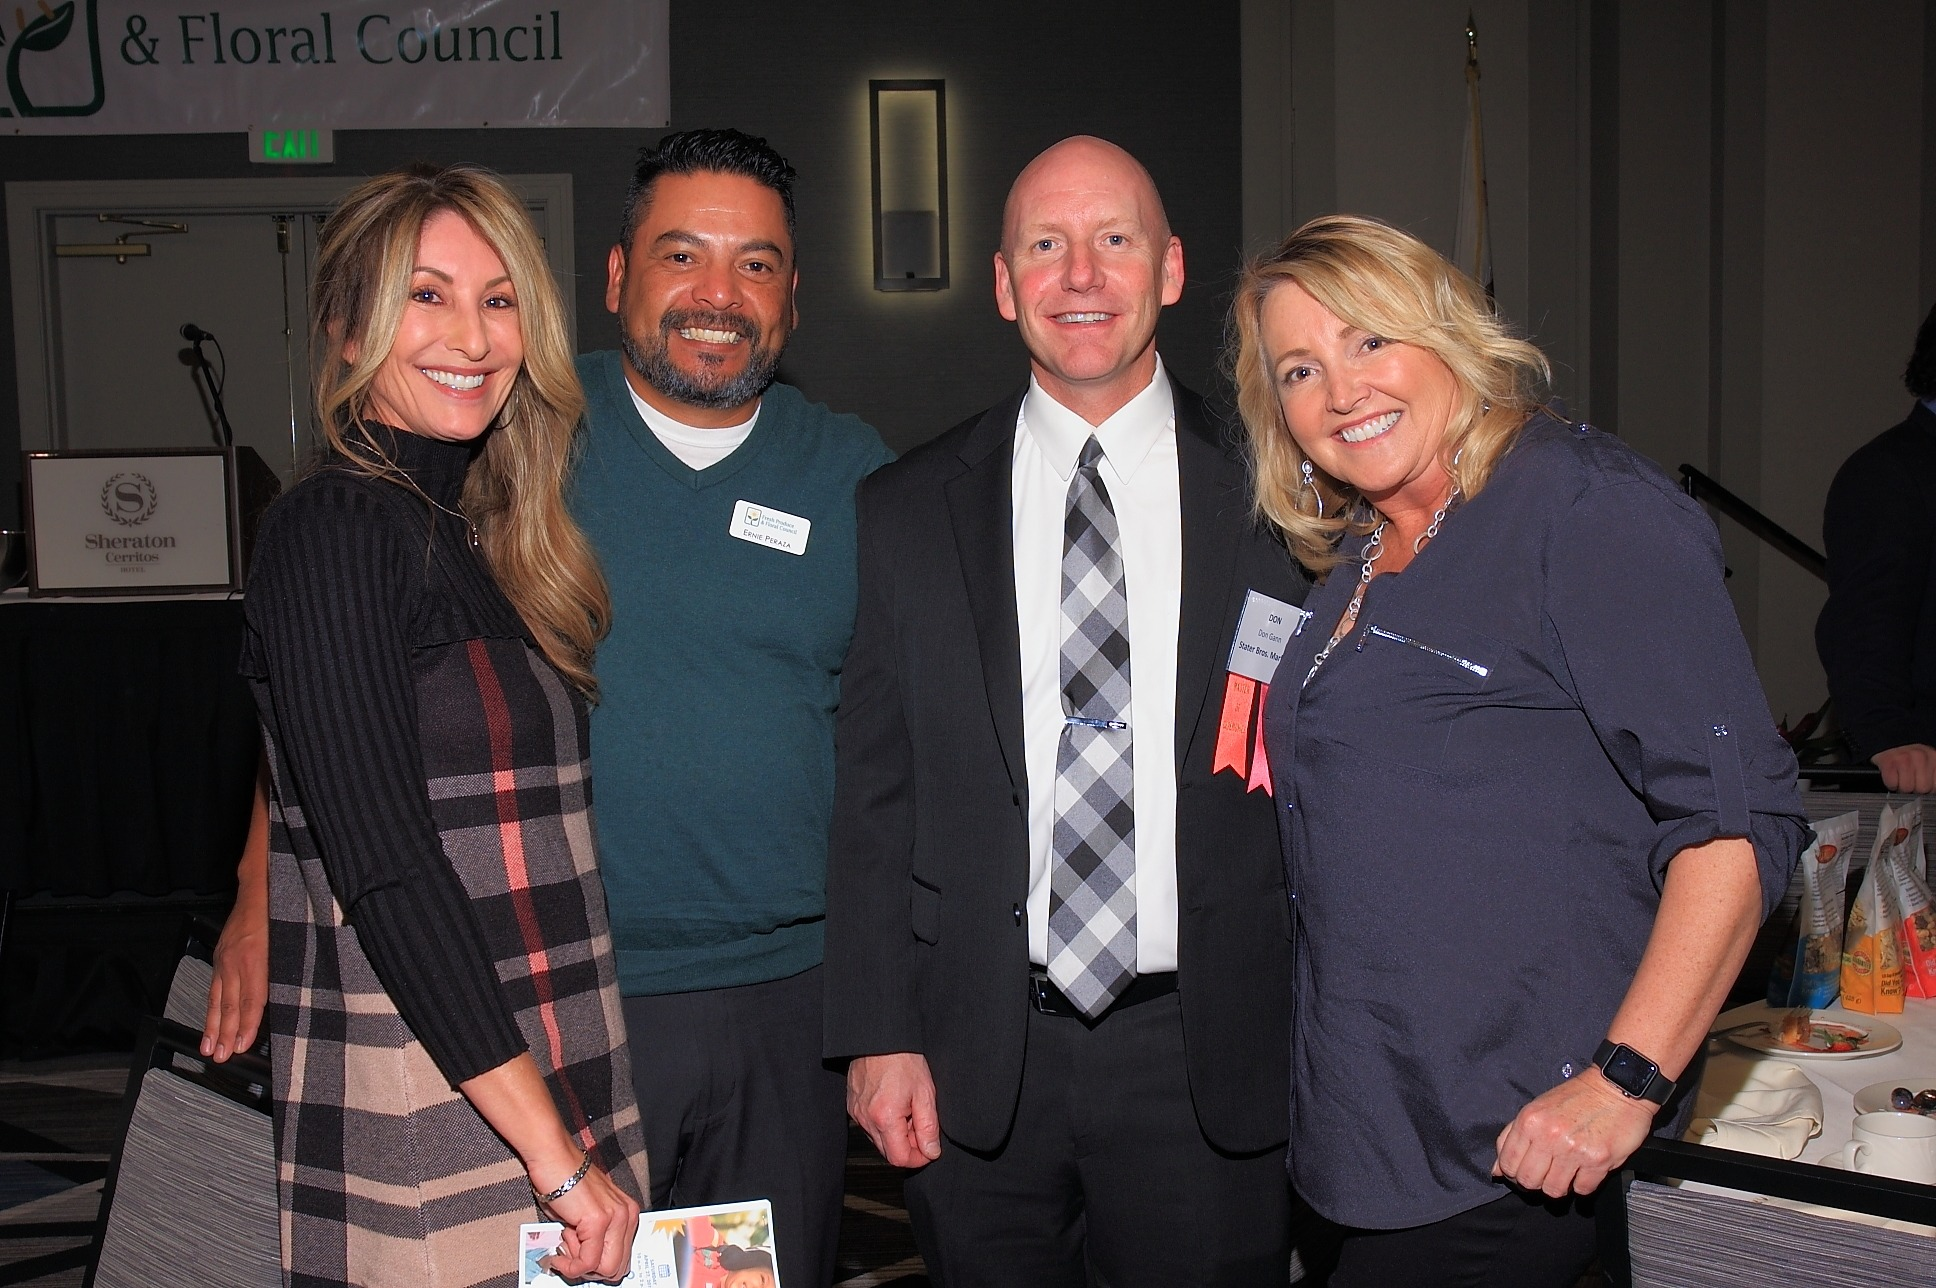 Therese Ferrara of Preferred Sales with Ernie Perazza of House Foods America, Master of Ceremonies Don Gann of Stater Bros. Markets and Mary Lou Ureta of FreshSource, LLC